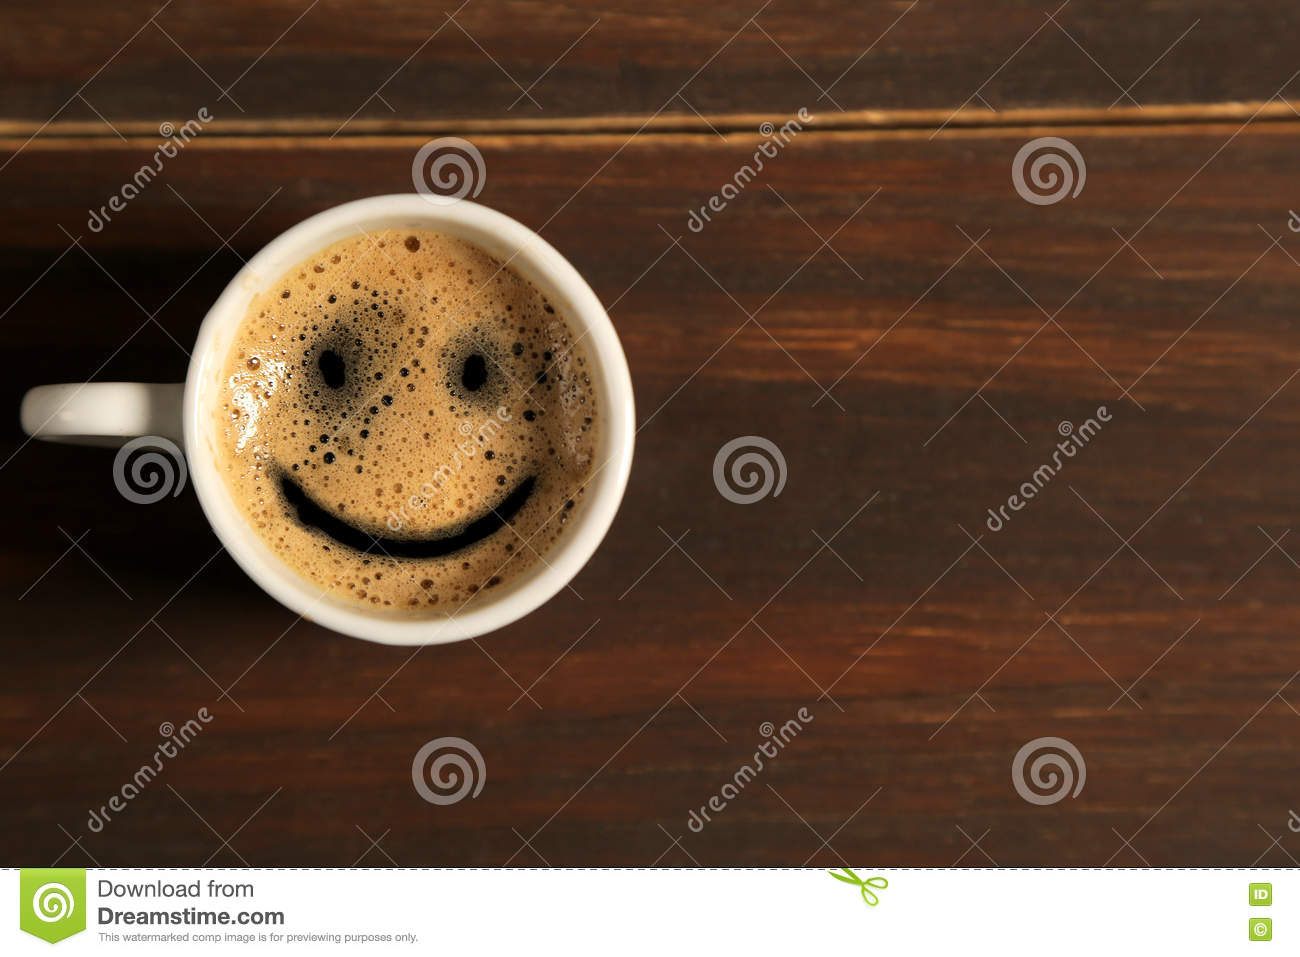 Good morning coffee smile cup on wooden background